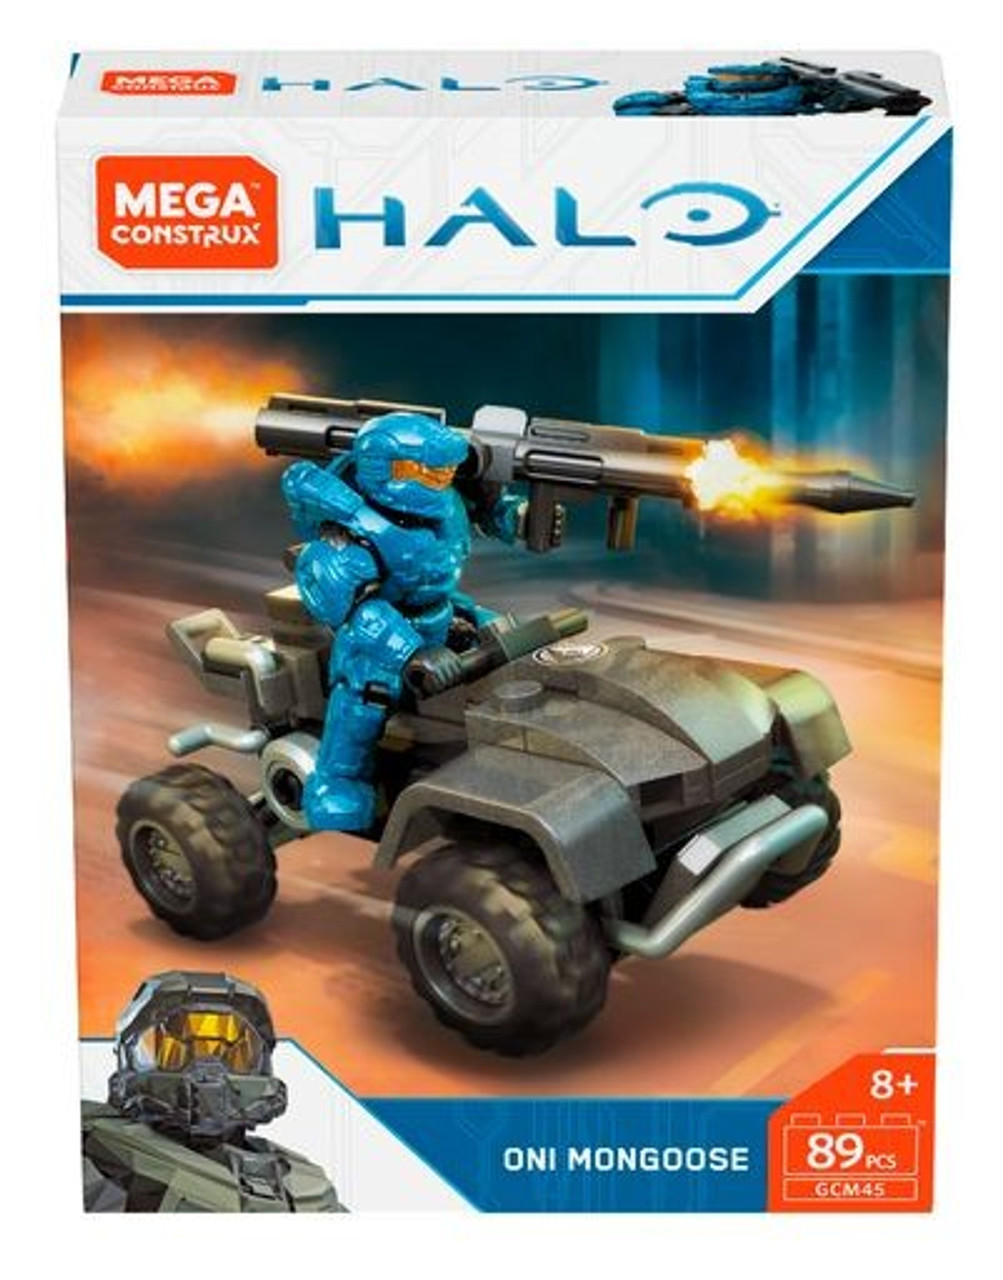 Halo Mega Construx ONI Mongoose Set (Pre-Order ships September)